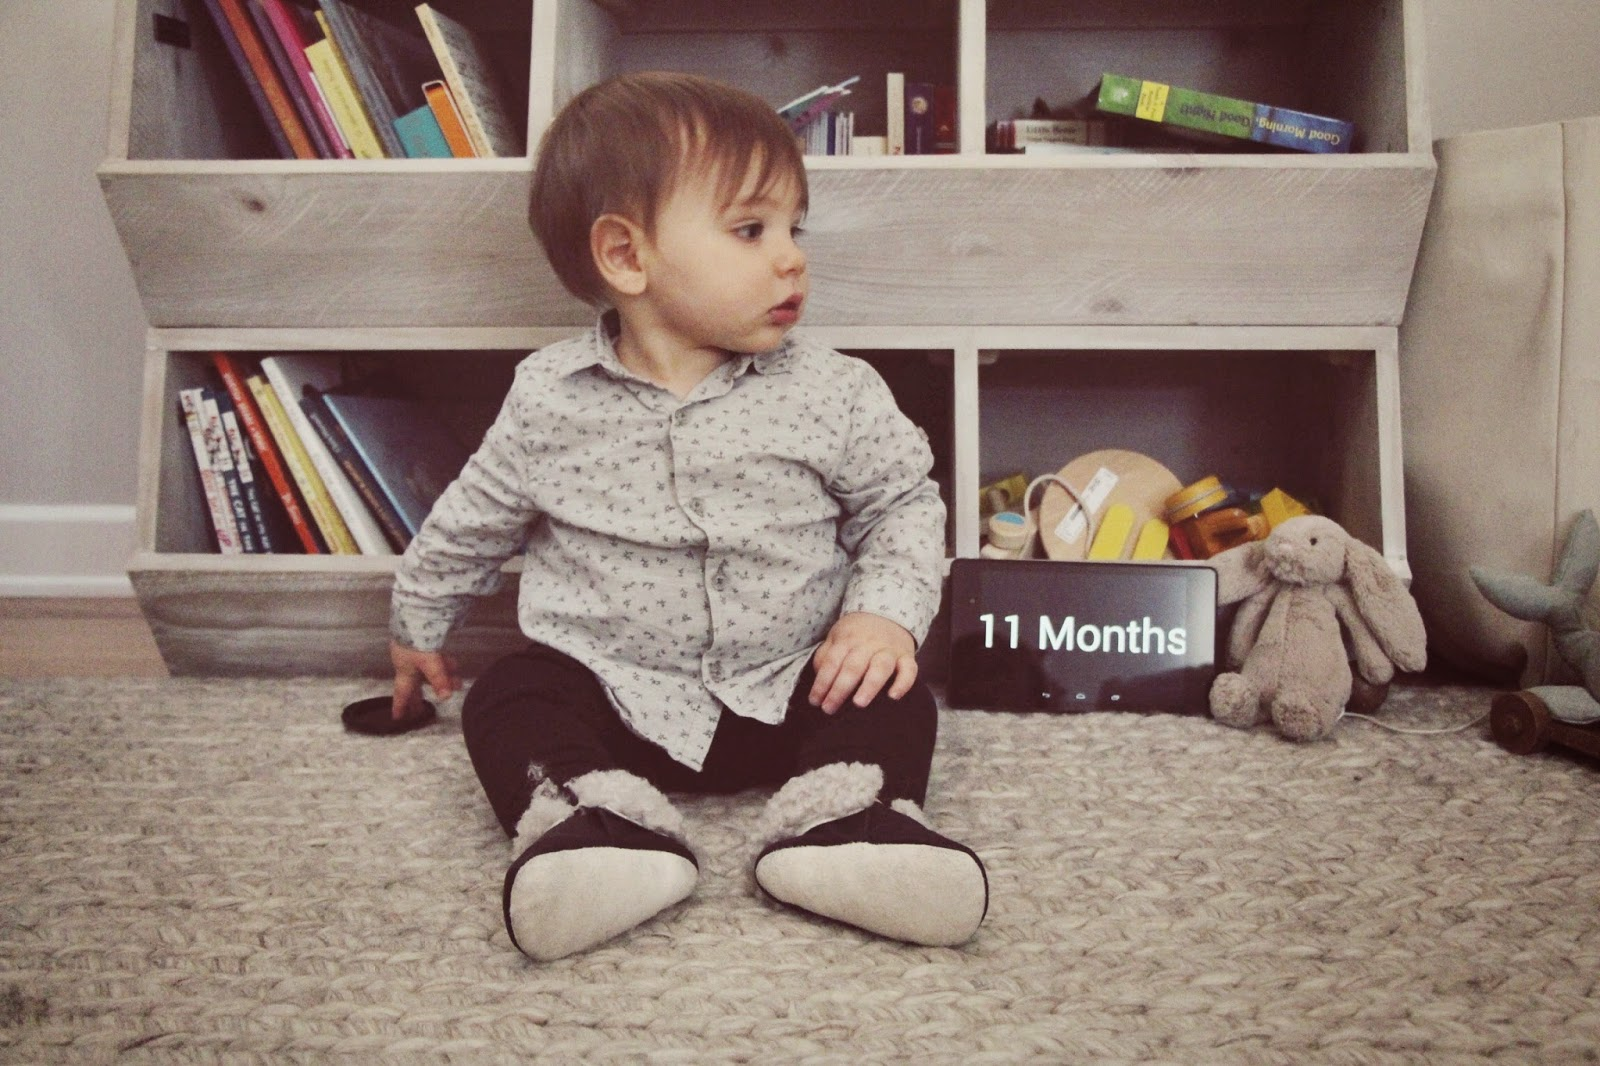 My Love and Beyond - Mommy & Baby Fashion Blog: 11 months old